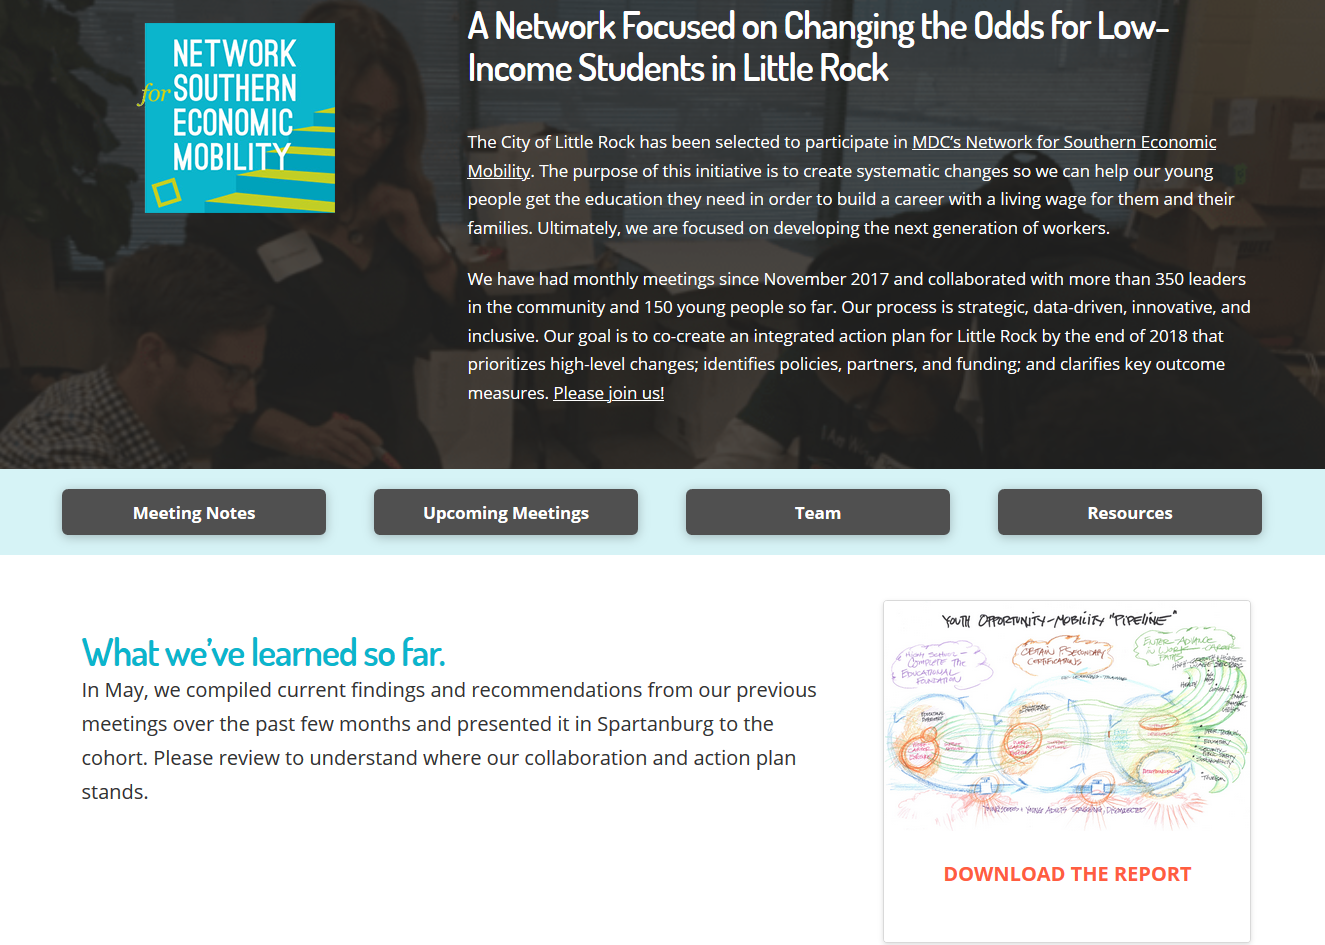 Network for Southern Economic Mobility Web Hub